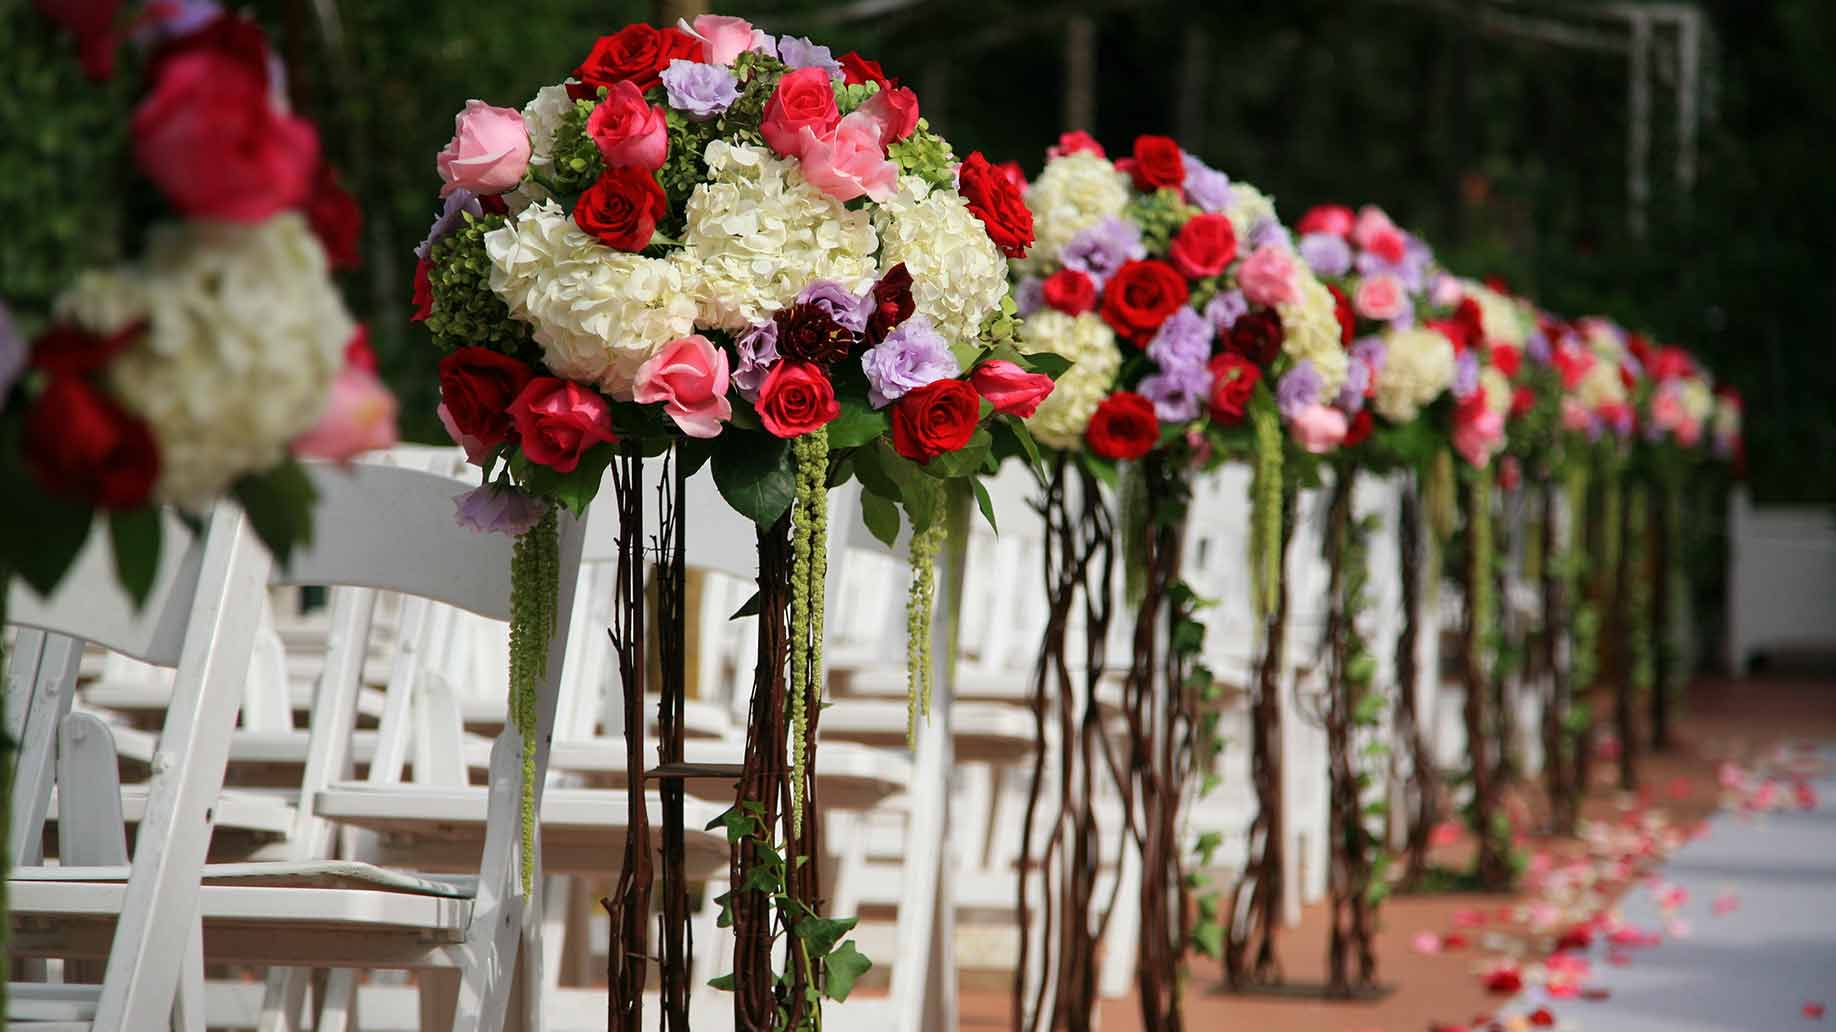 Average Cost Of Flowers For A Wedding.How Much Do Wedding Flowers Cost Prices